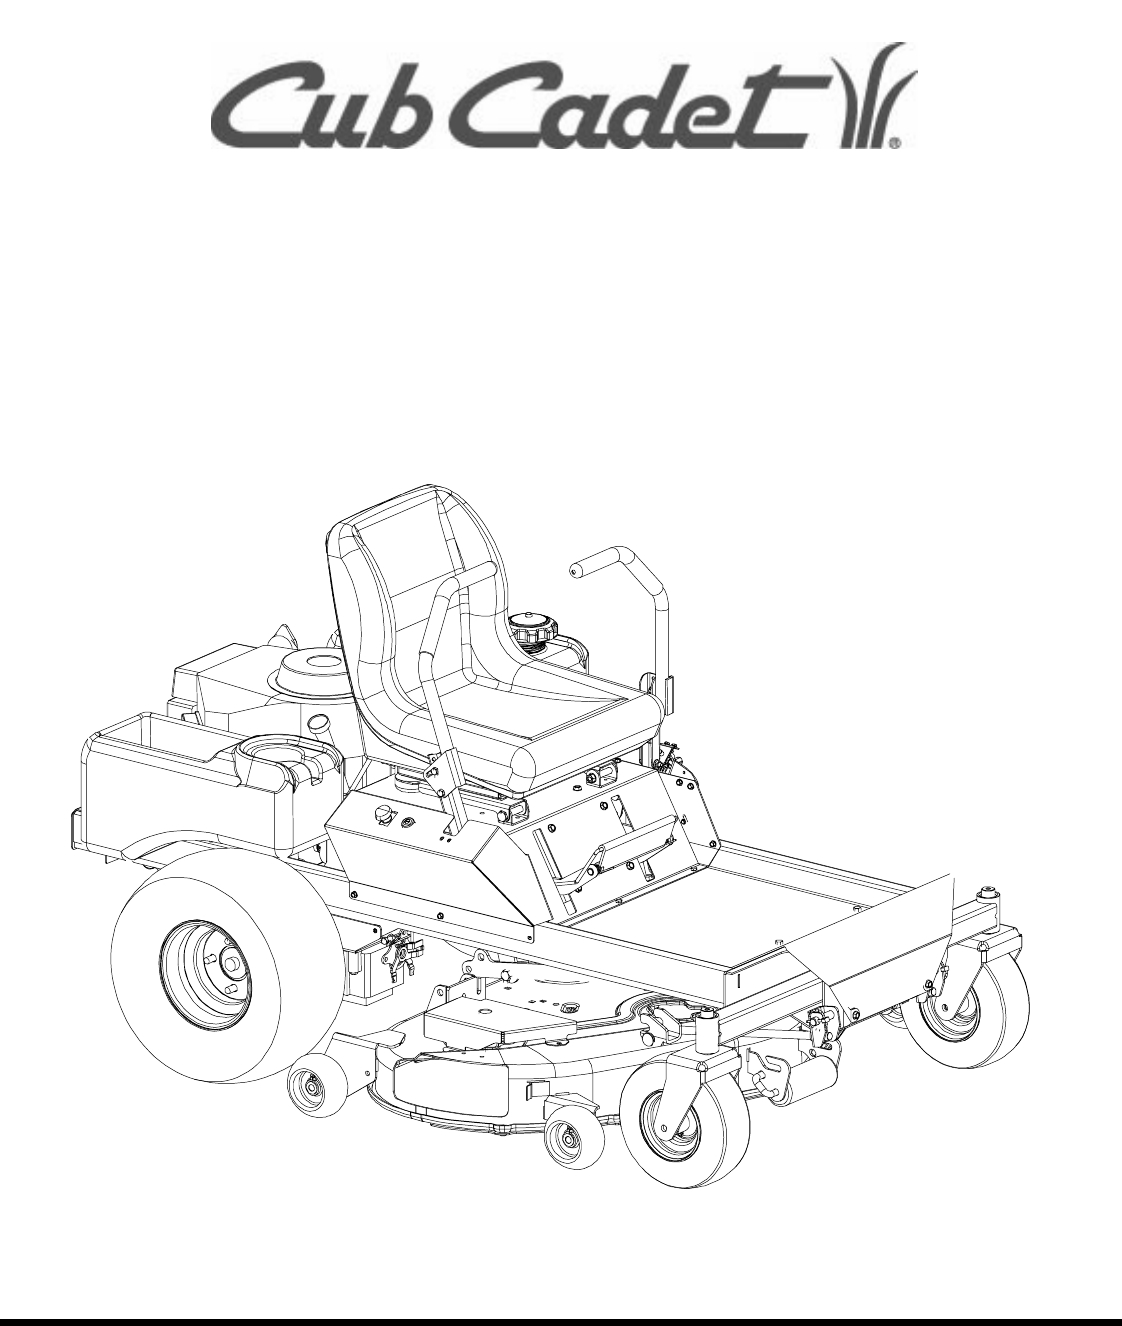 Cub Cadet Lawn Mowers 53Aa5D2L100 Pdf Parts List Free Download with regard to Cub Cadet Rzt 50 Parts Diagram